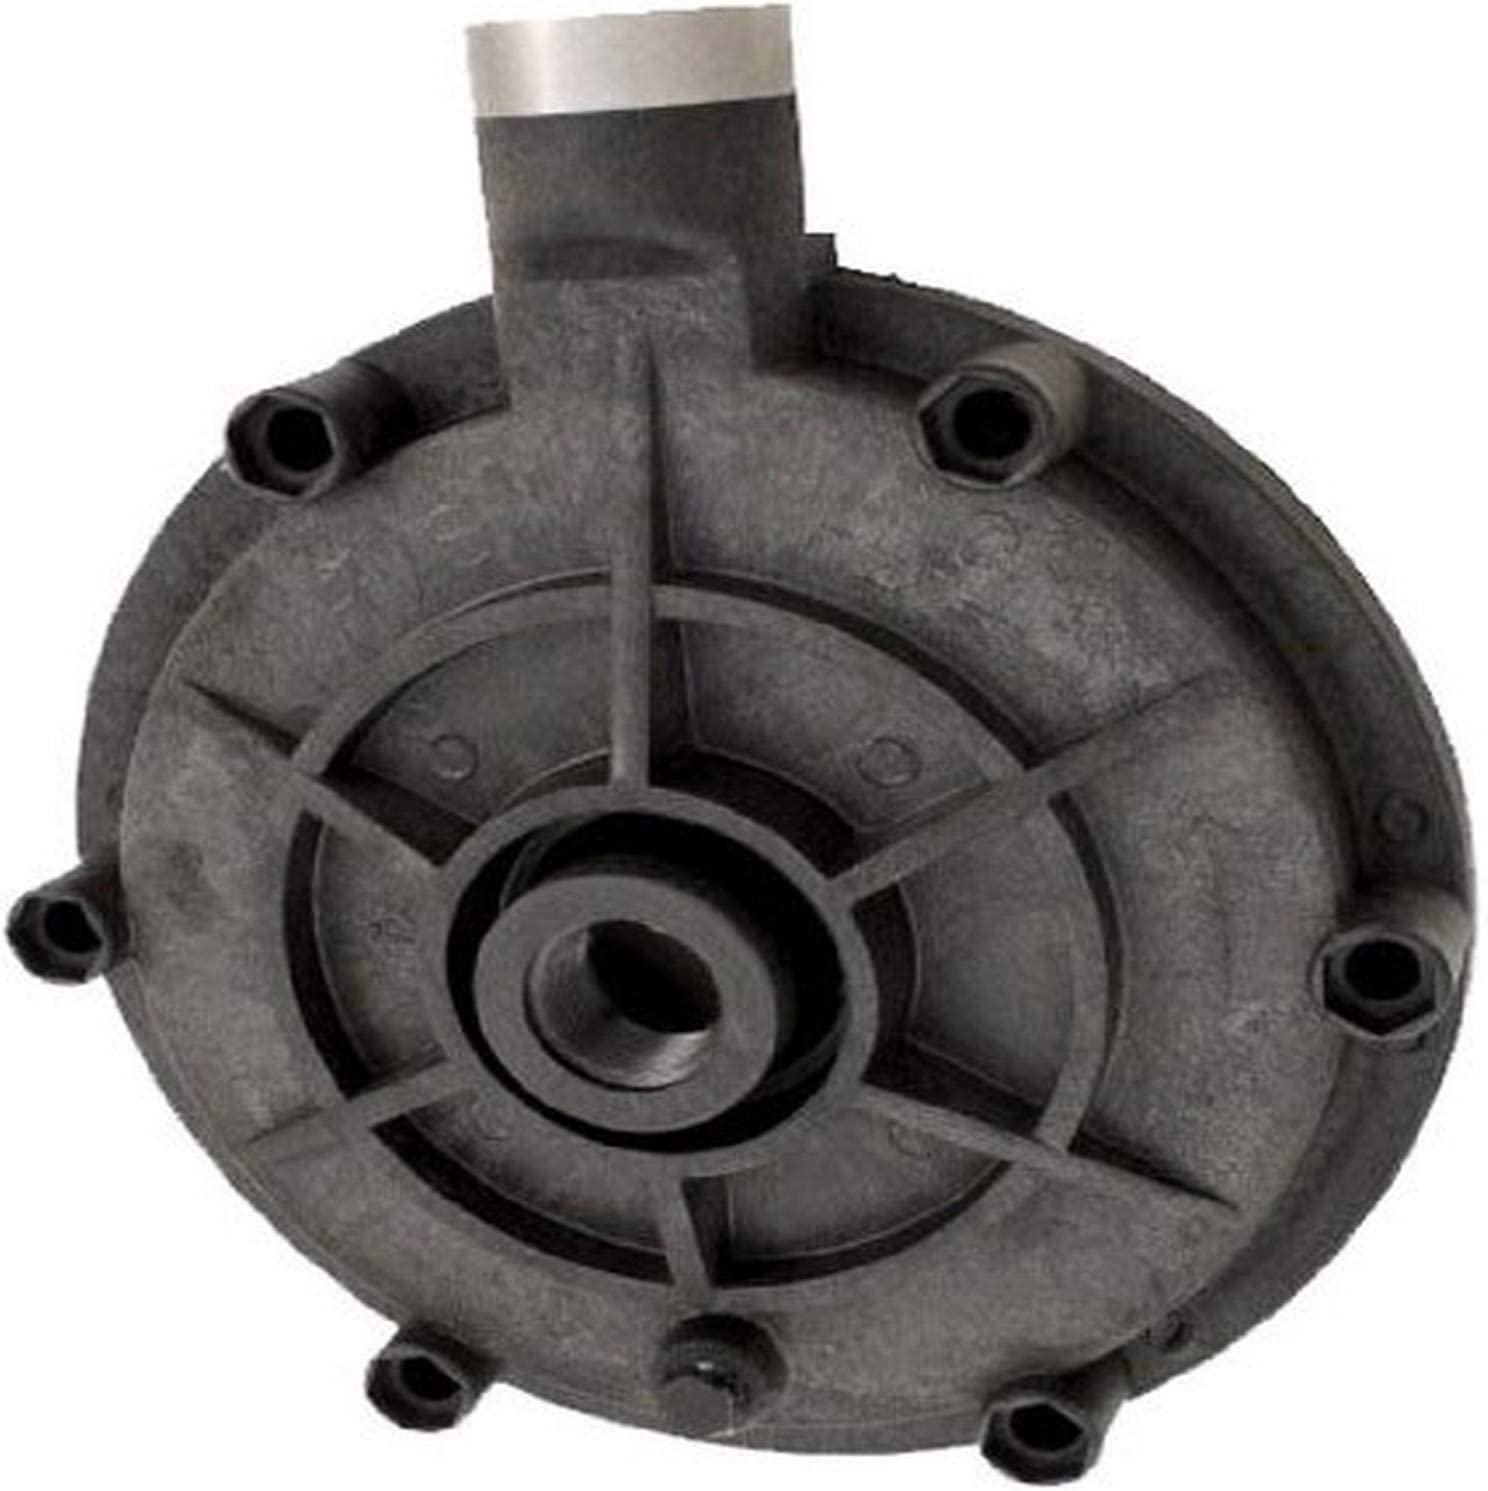 Zodiac P5 Volute for Zodiac Polaris PB4-60 Booster Pump